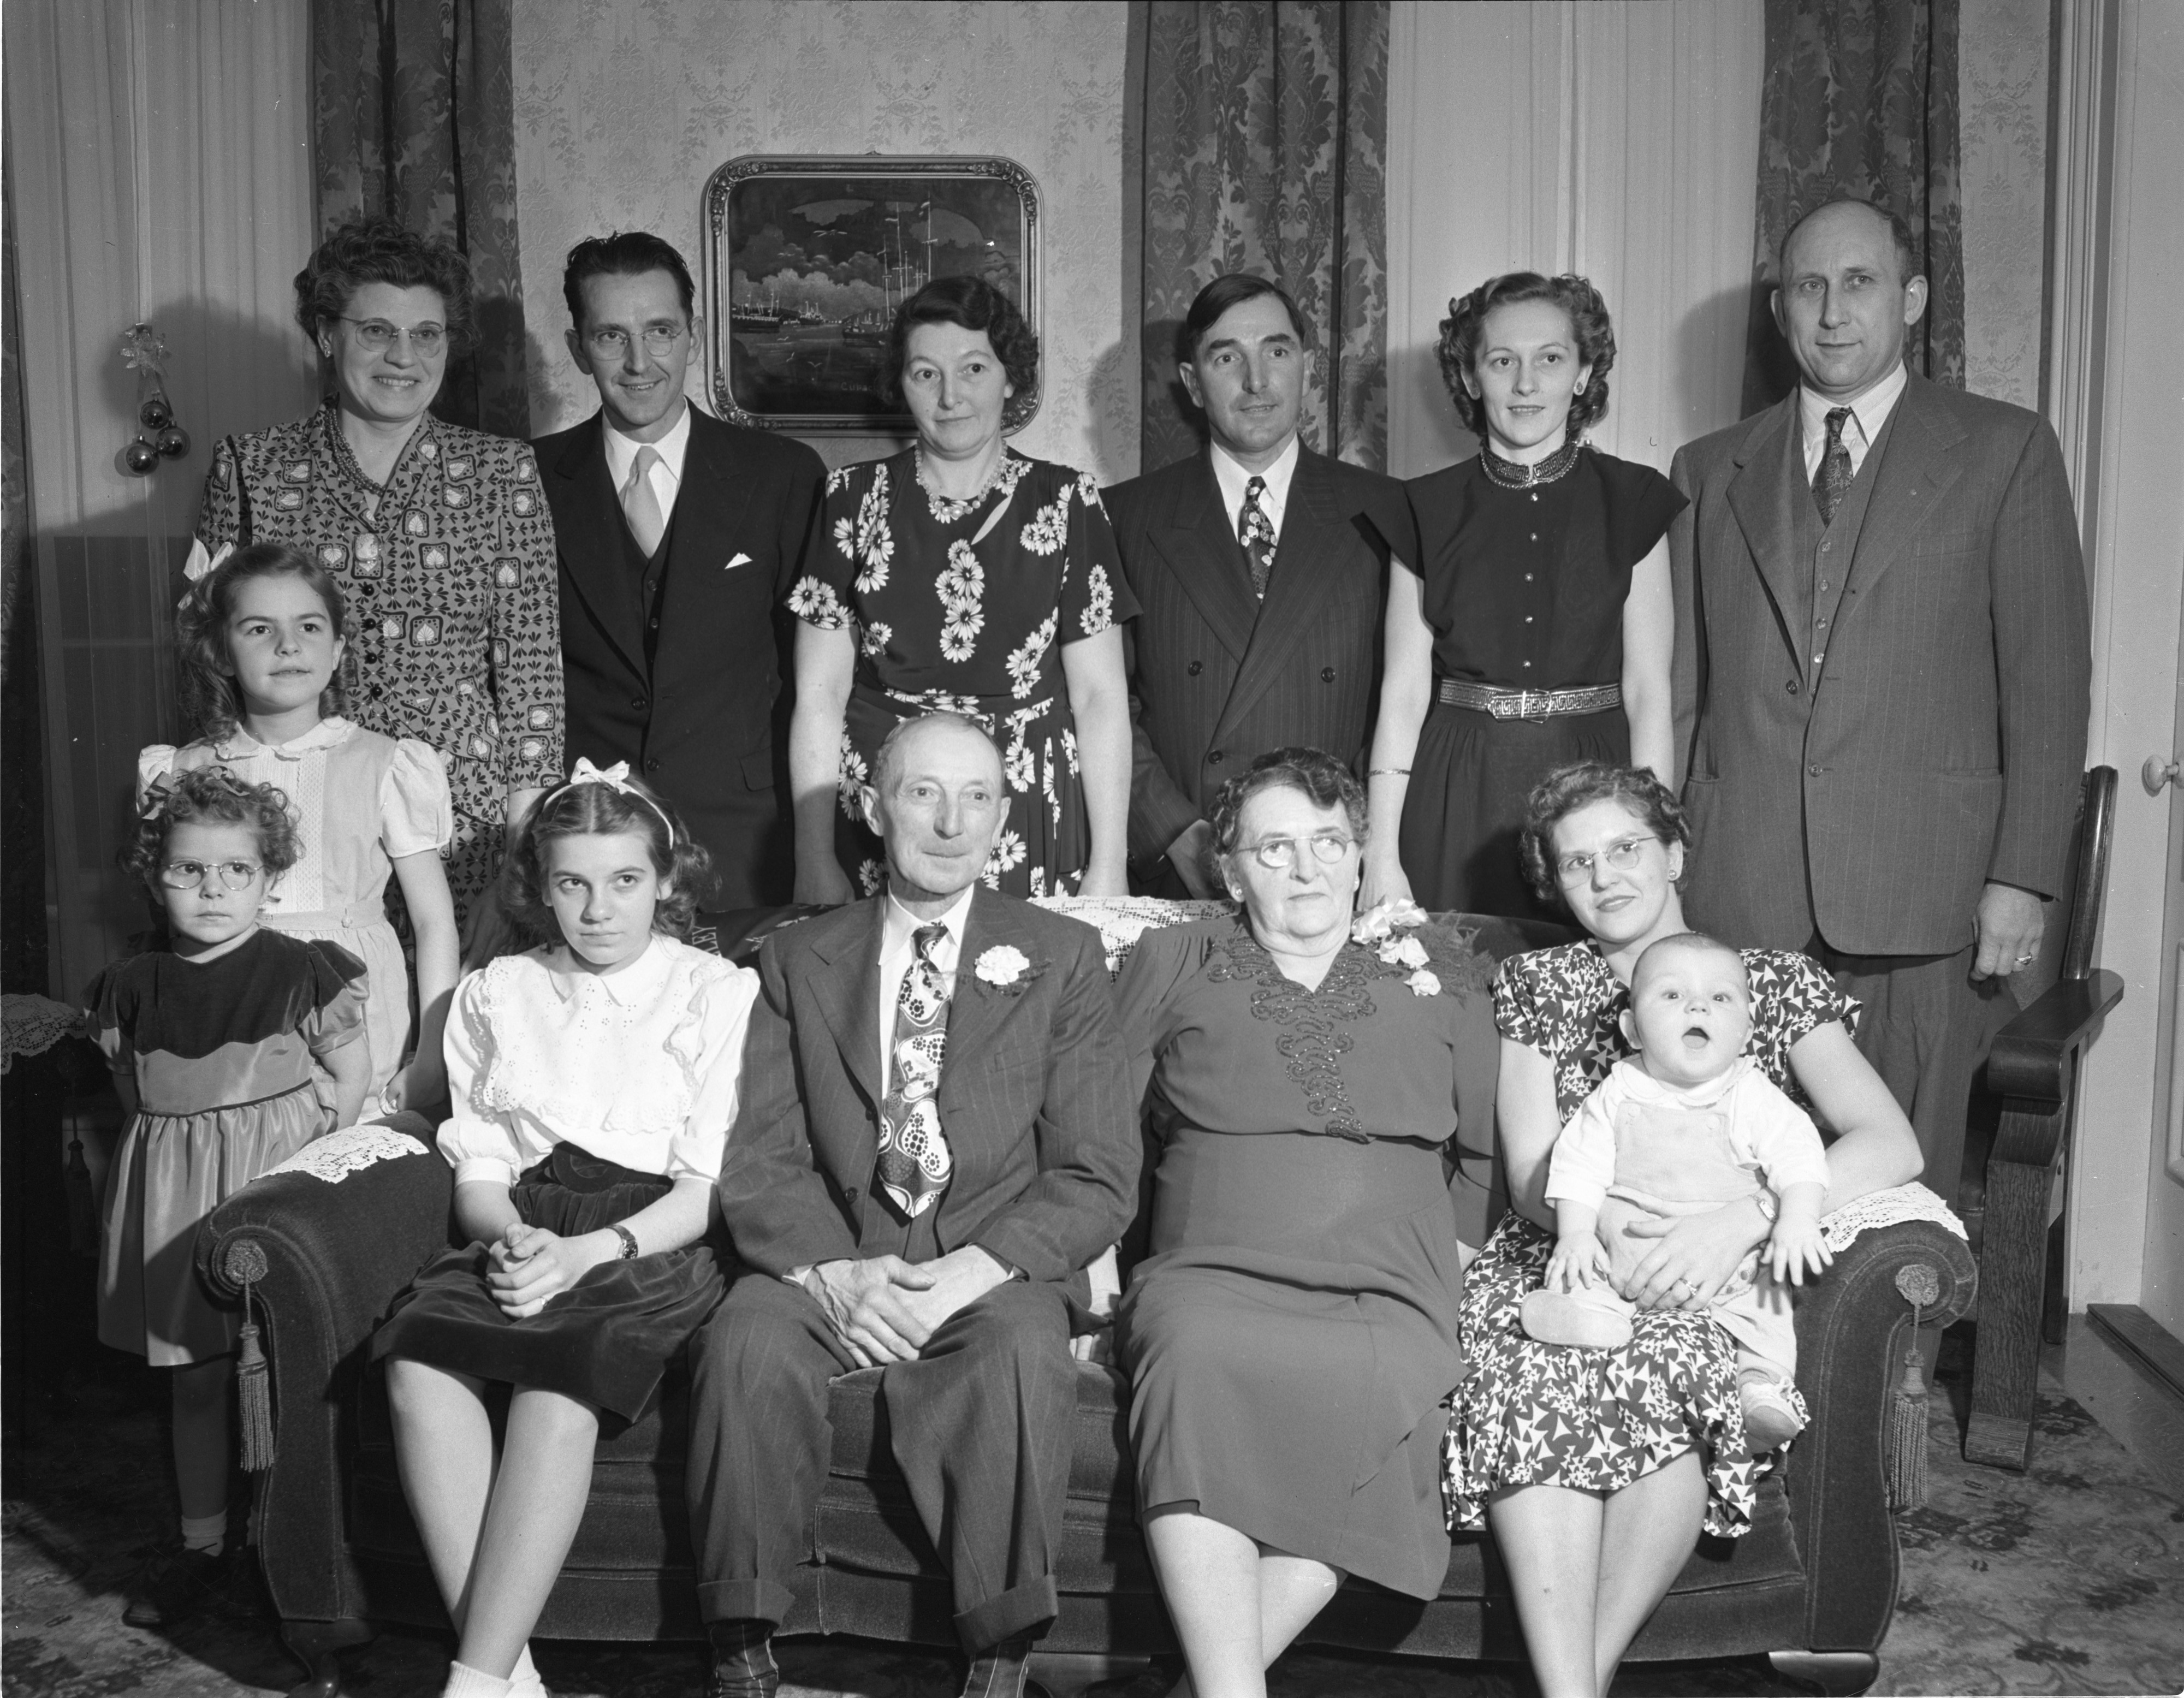 Mr. and Mrs. Dewey Farley & Family Celebrate Their 50th Wedding Anniversary, December 1948 image